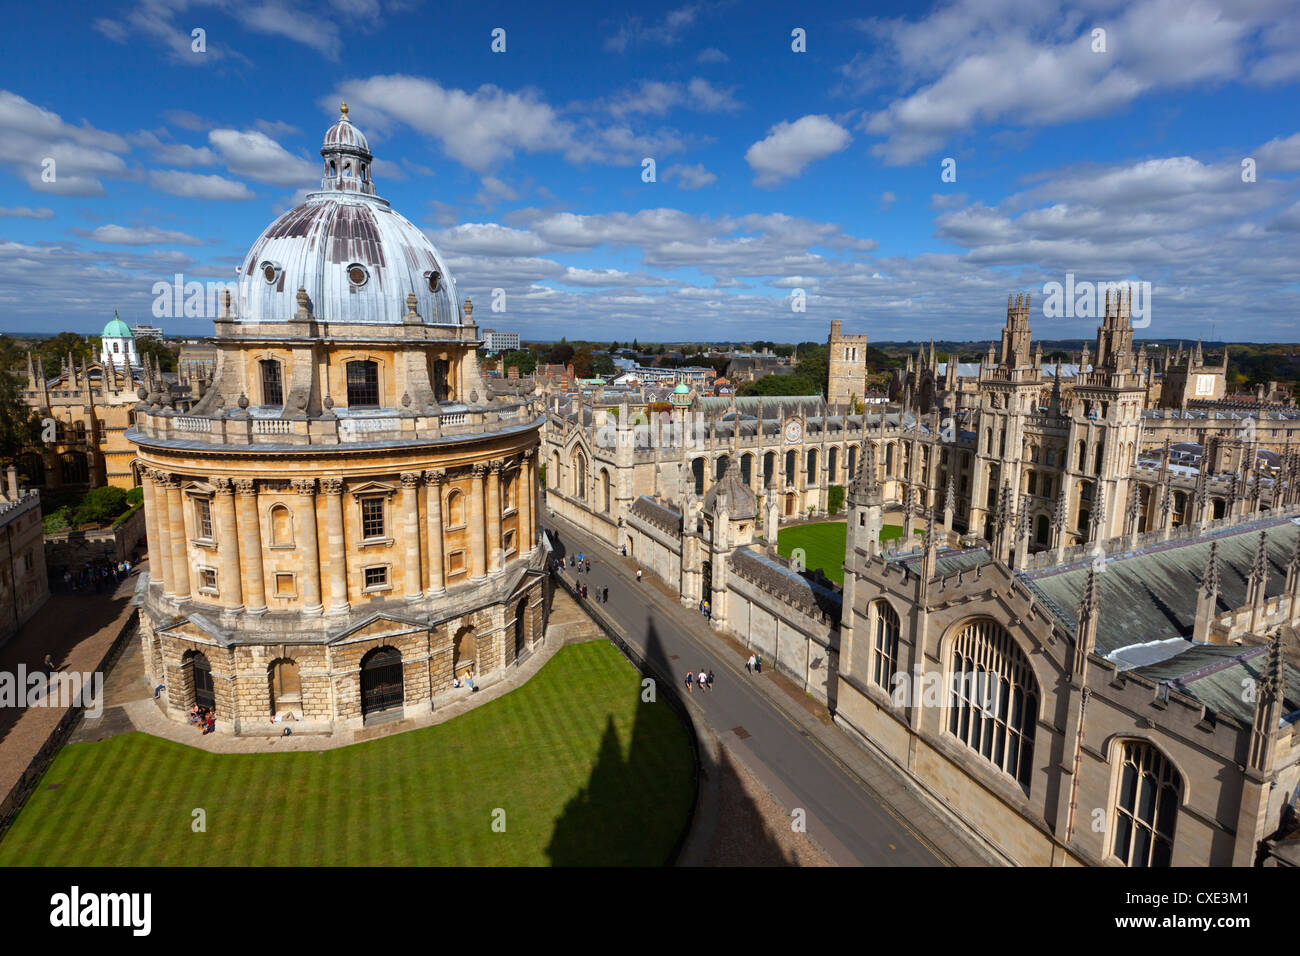 View over Radcliffe Camera and All Souls College, Oxford, Oxfordshire, England - Stock Image